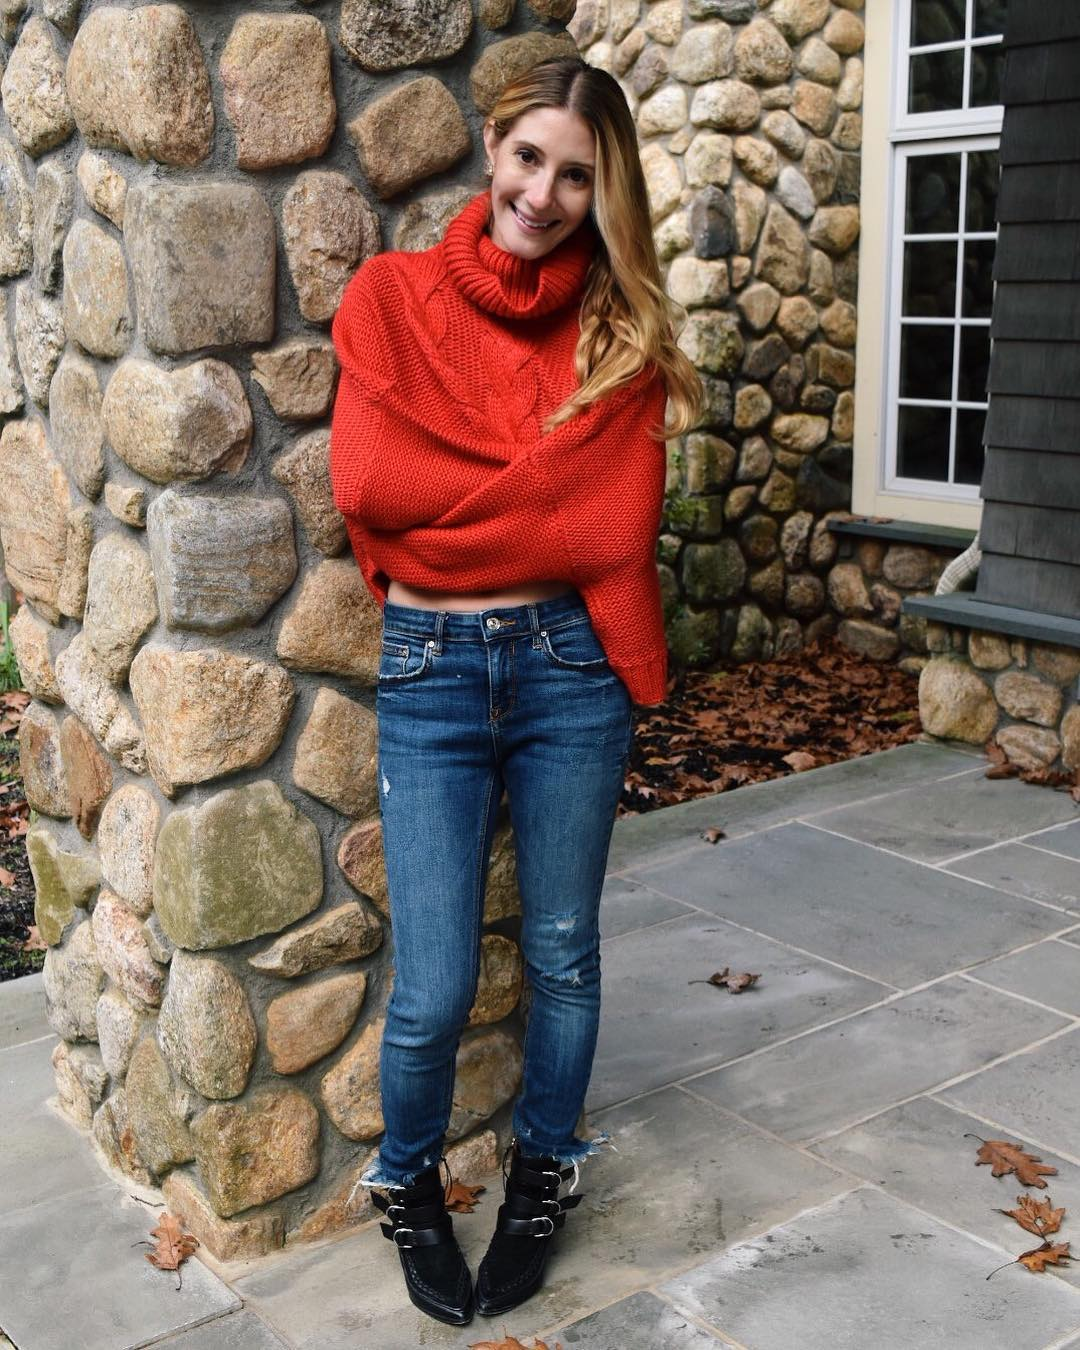 Chunky Red Knit Crop Sweater With Jeans